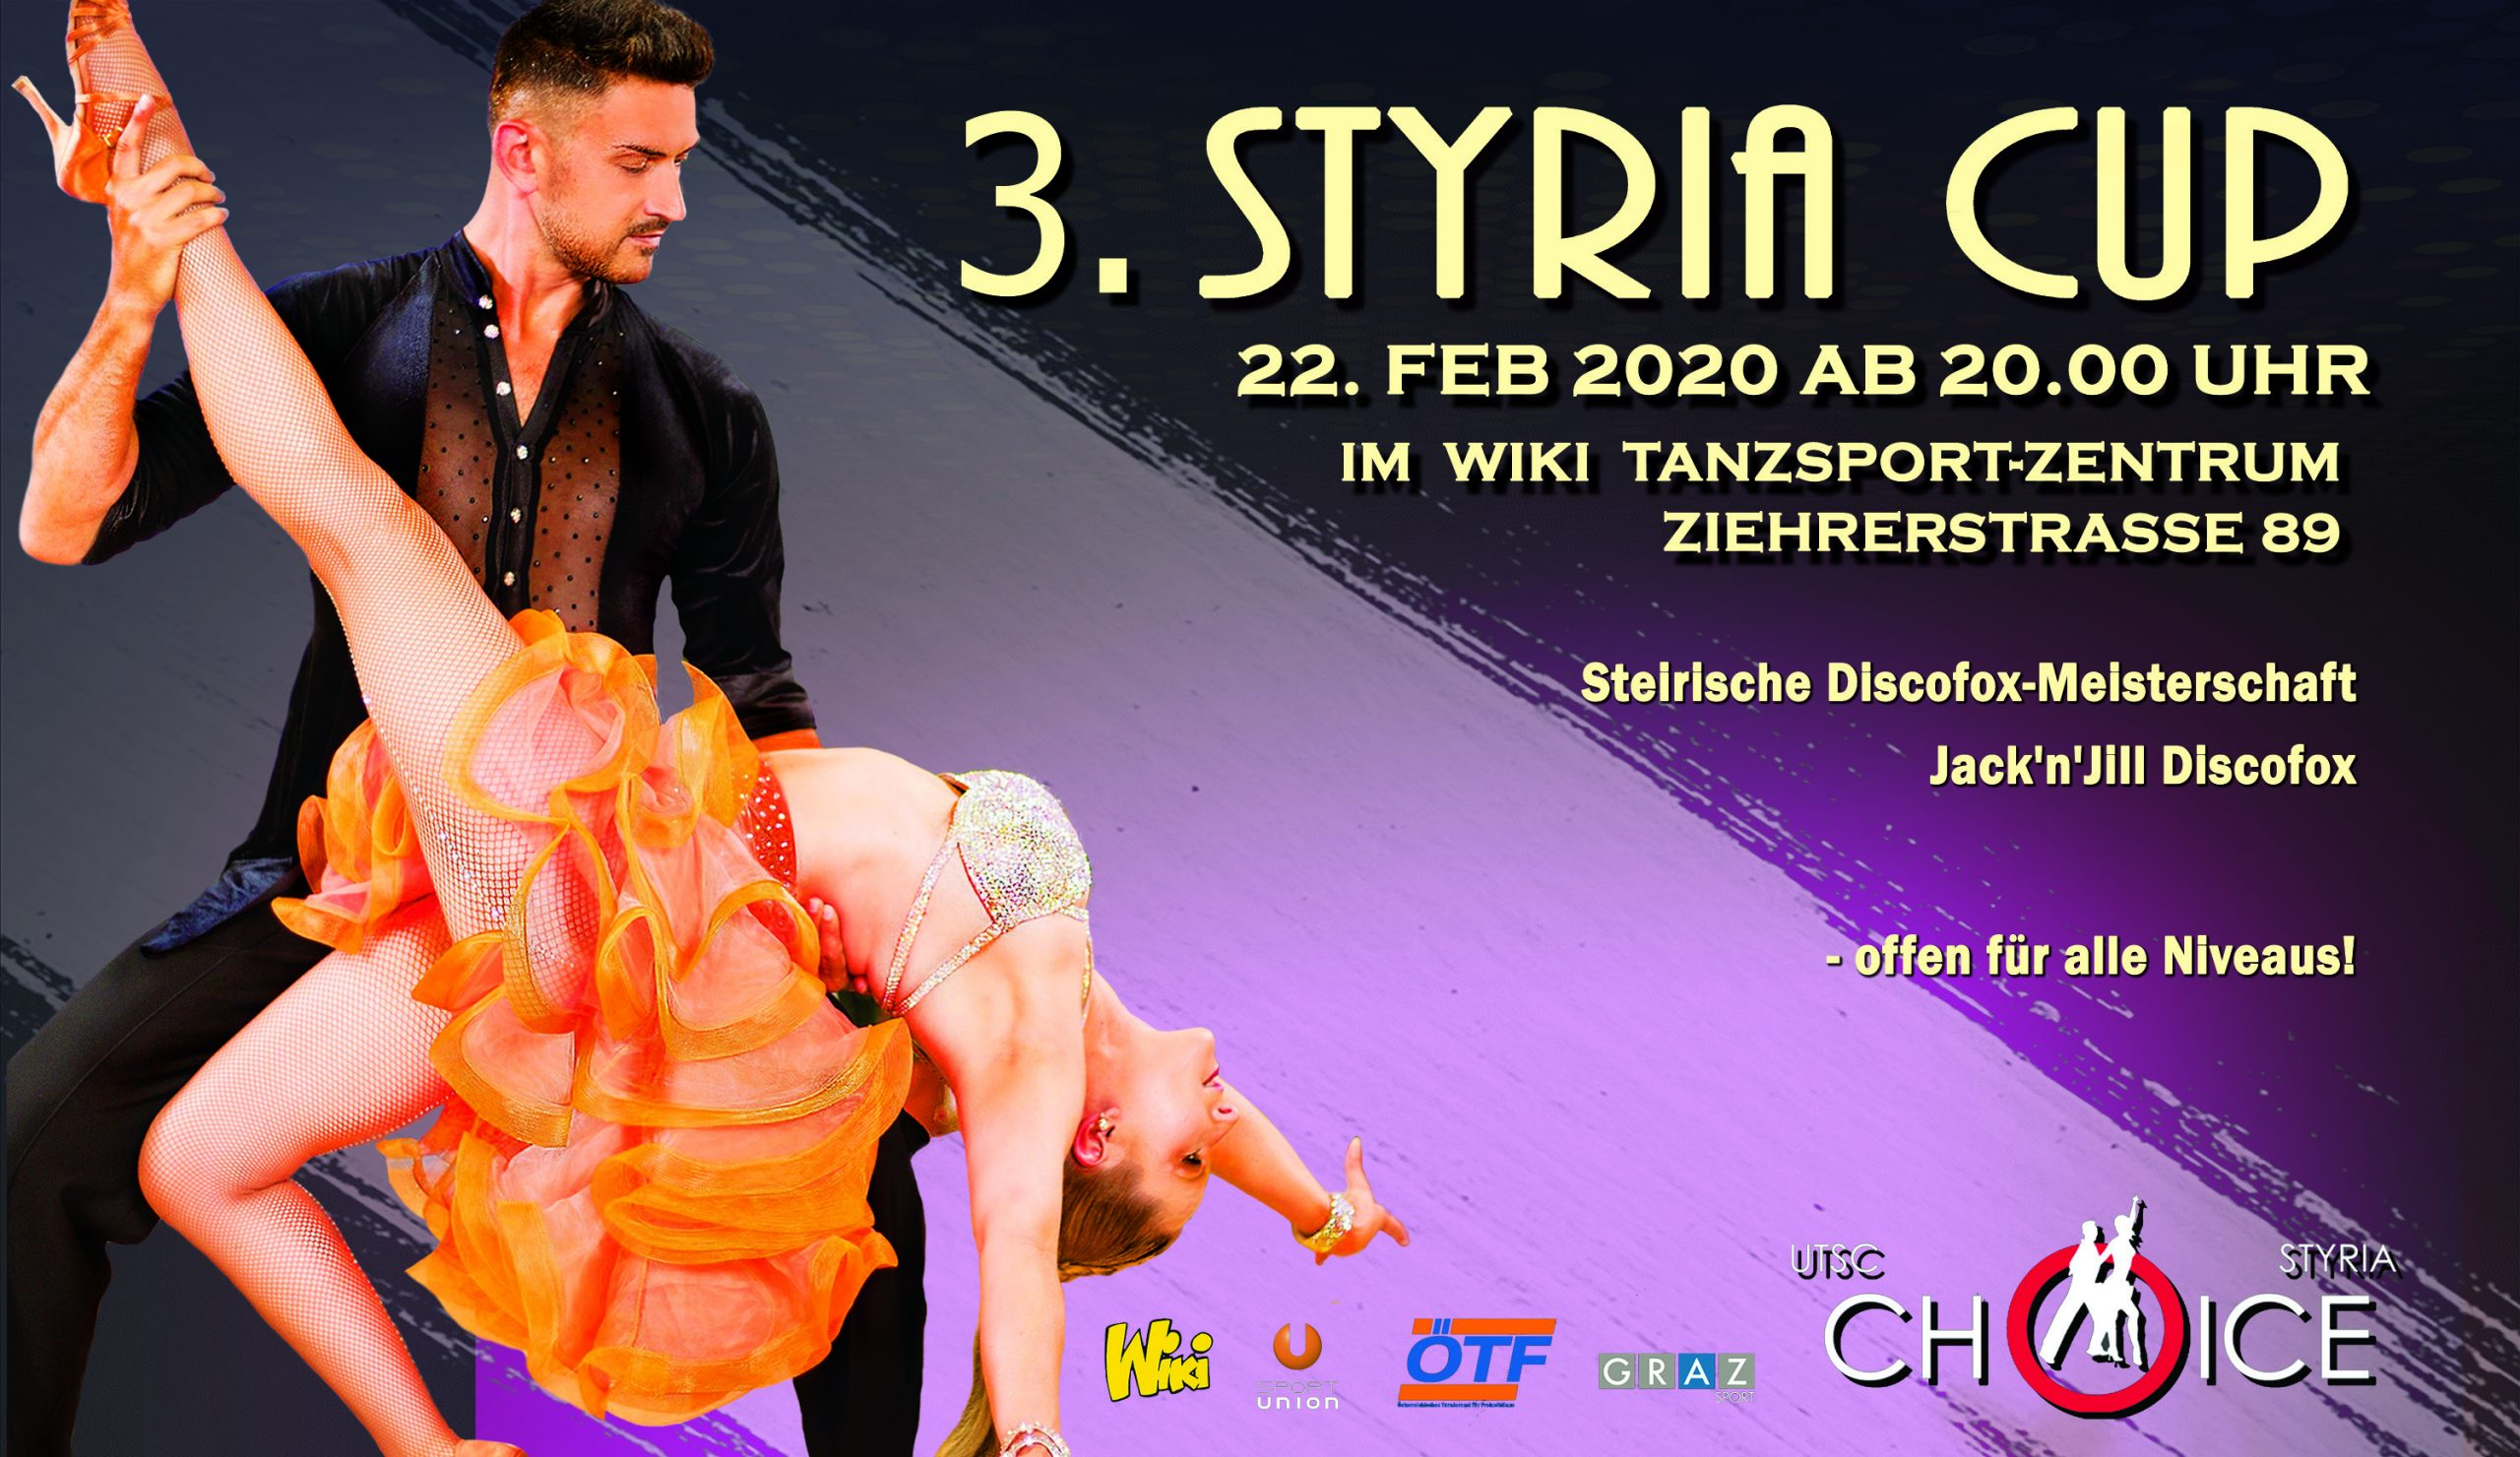 styria cup 2020